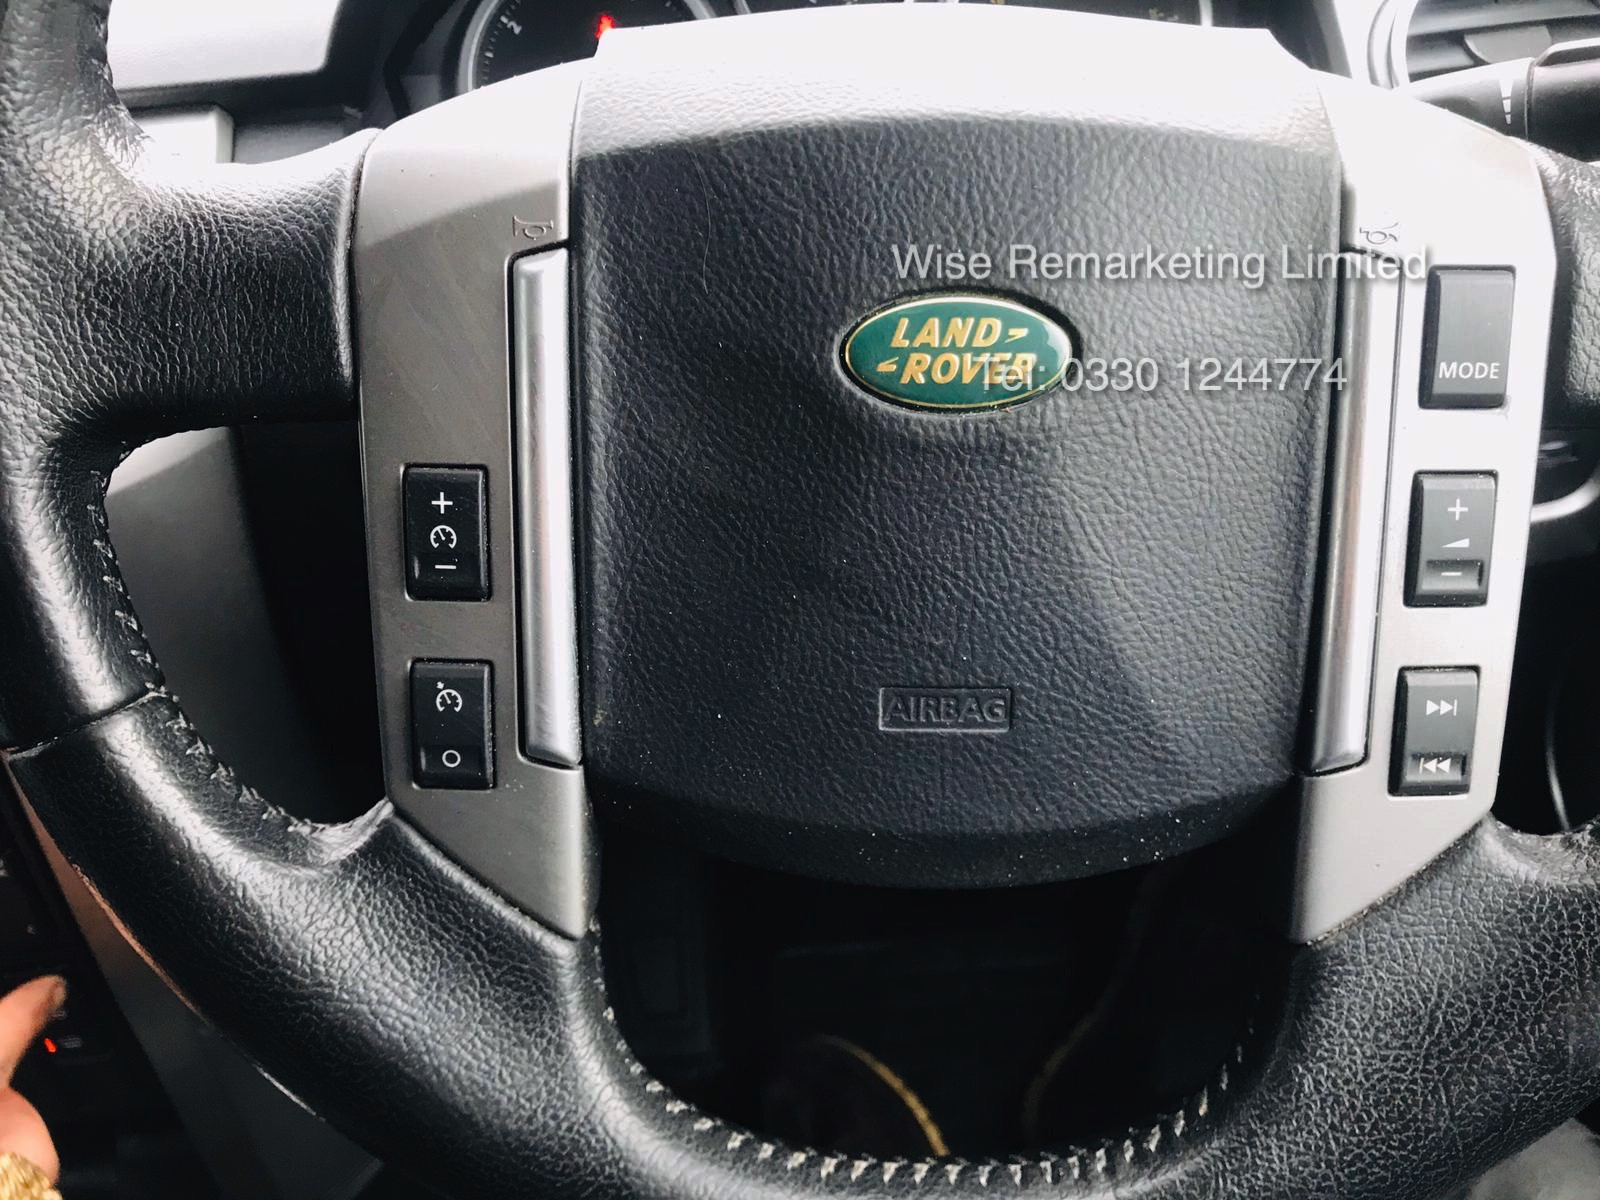 Land Rover Discovery SE 2.7 TDV6 Automatic - 2008 08 Reg - 7 seats - 1 Keeper - Service History - Image 14 of 22